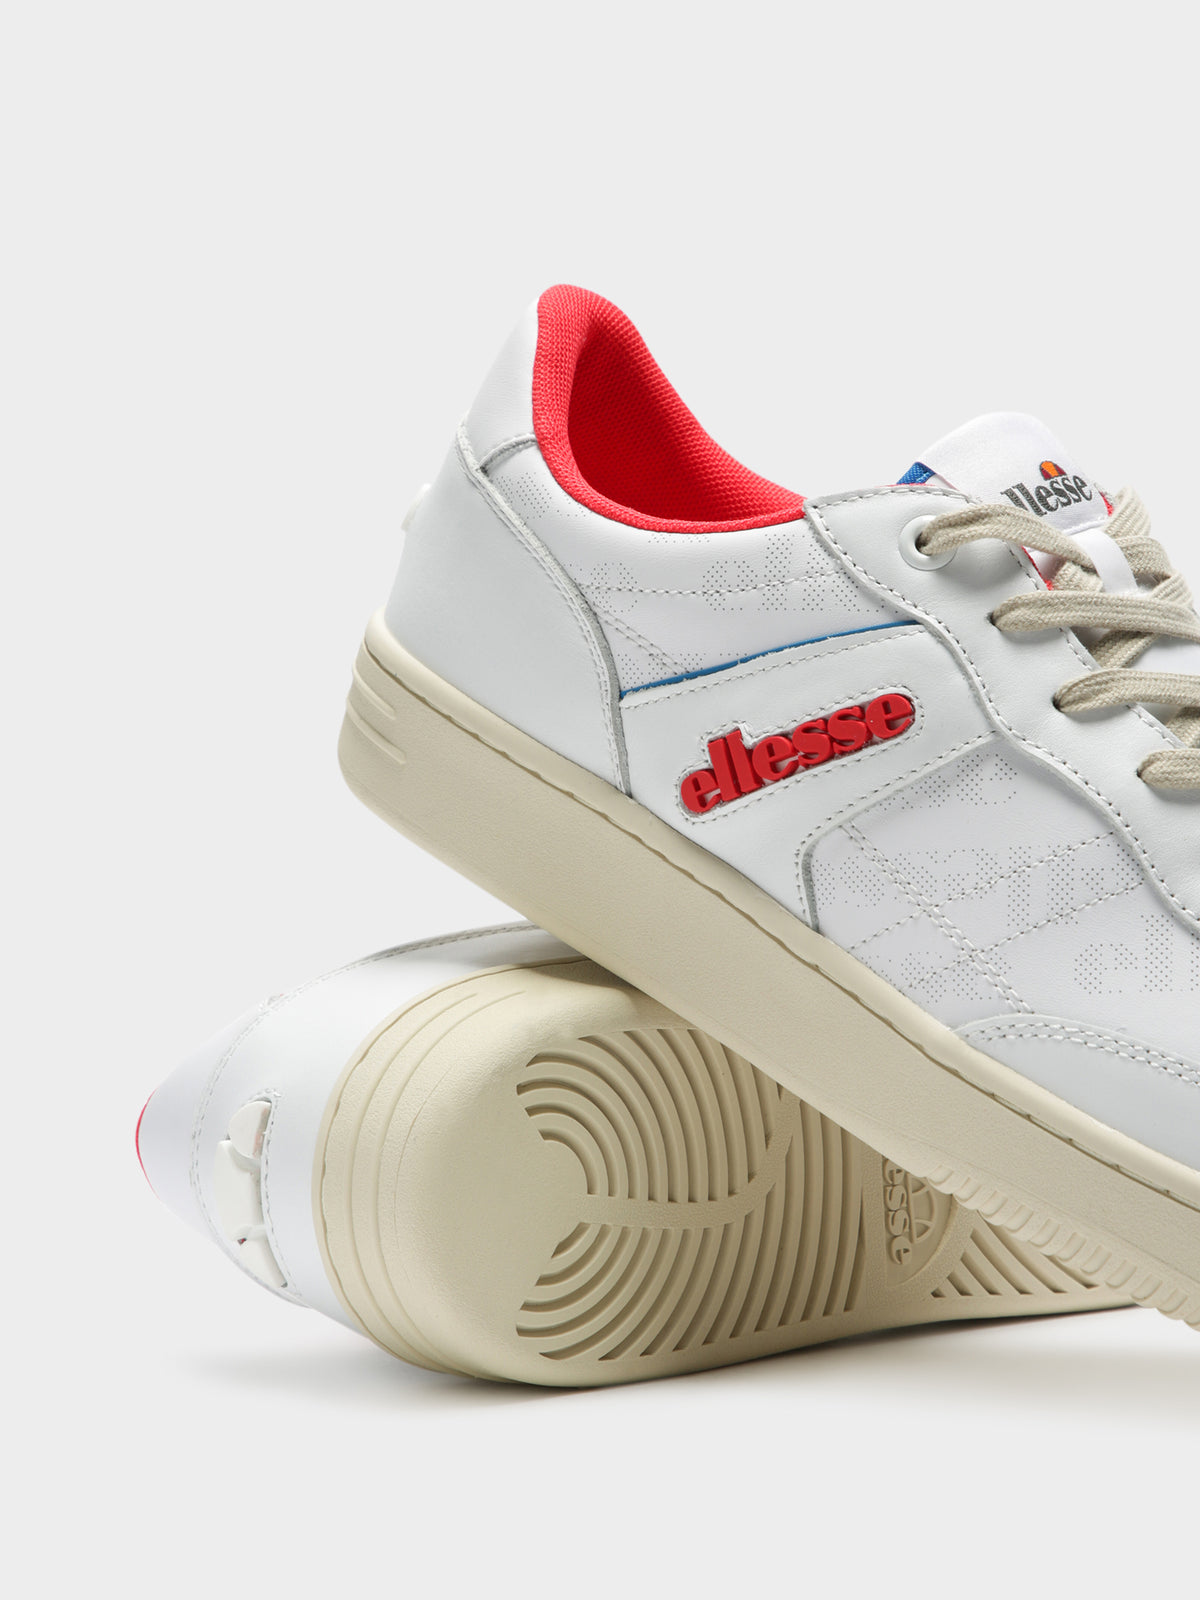 Mens Vinitziana 2.0 Sneakers in White Leather